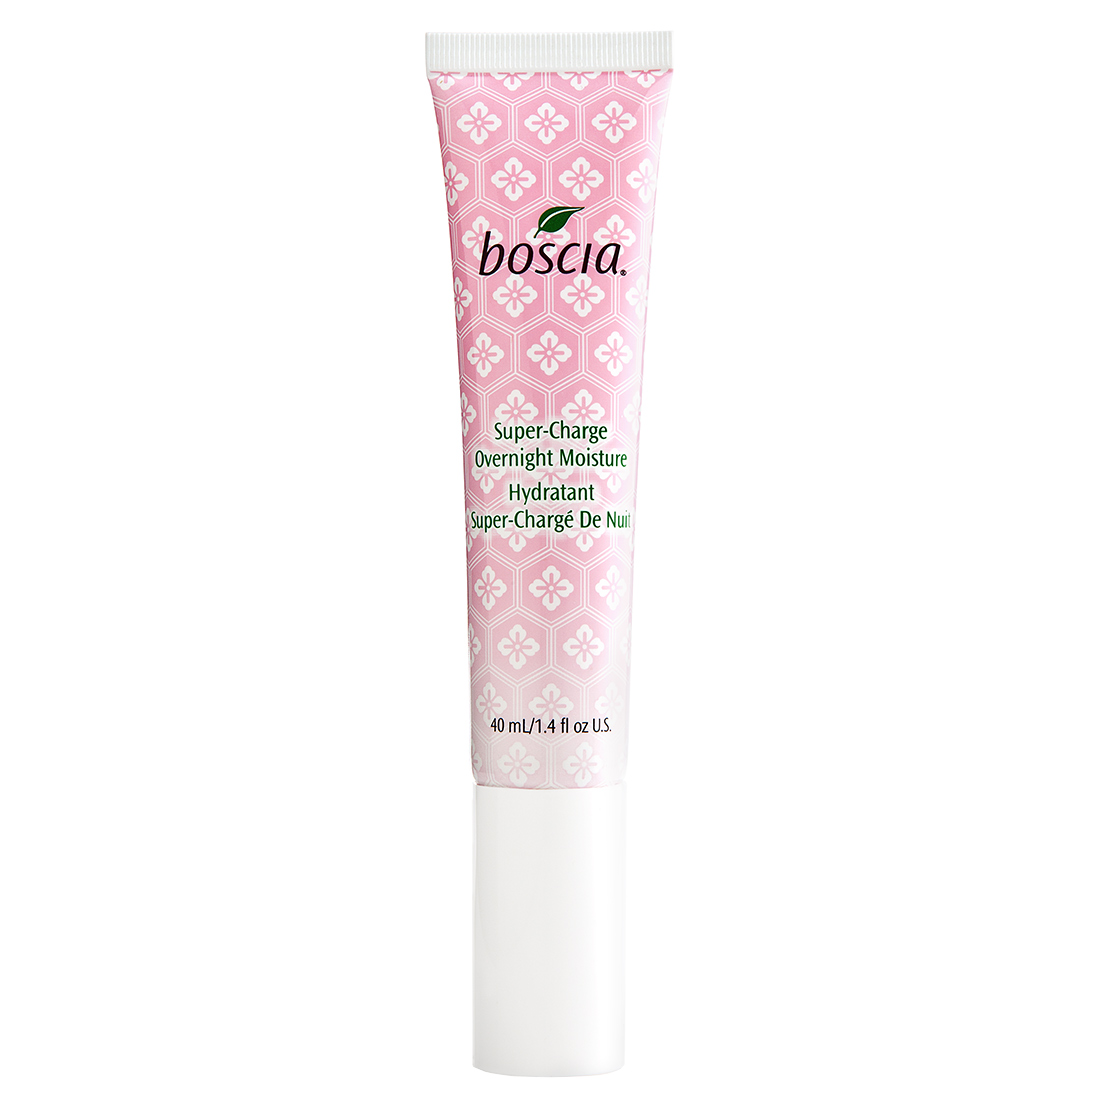 boscia Super-Charge Overnight Moisture